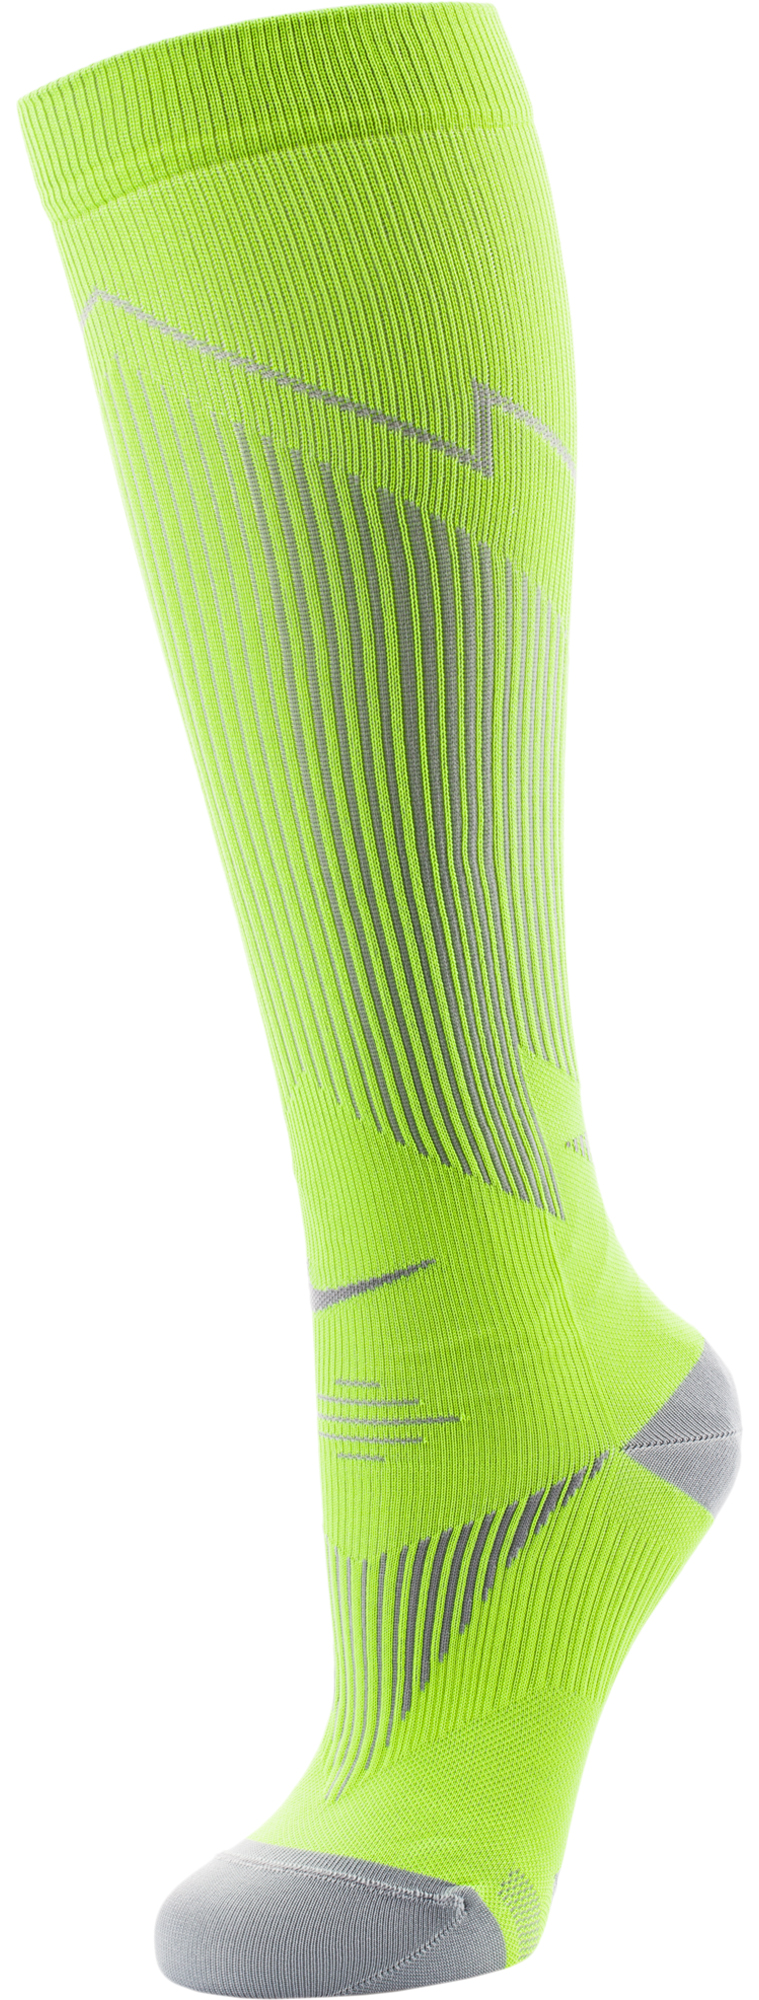 Nike Гольфы мужские Nike Elite Compression Over-the-Calf, 1 пара повязки nike чулок для щитков nike guard lock elite se0173 011